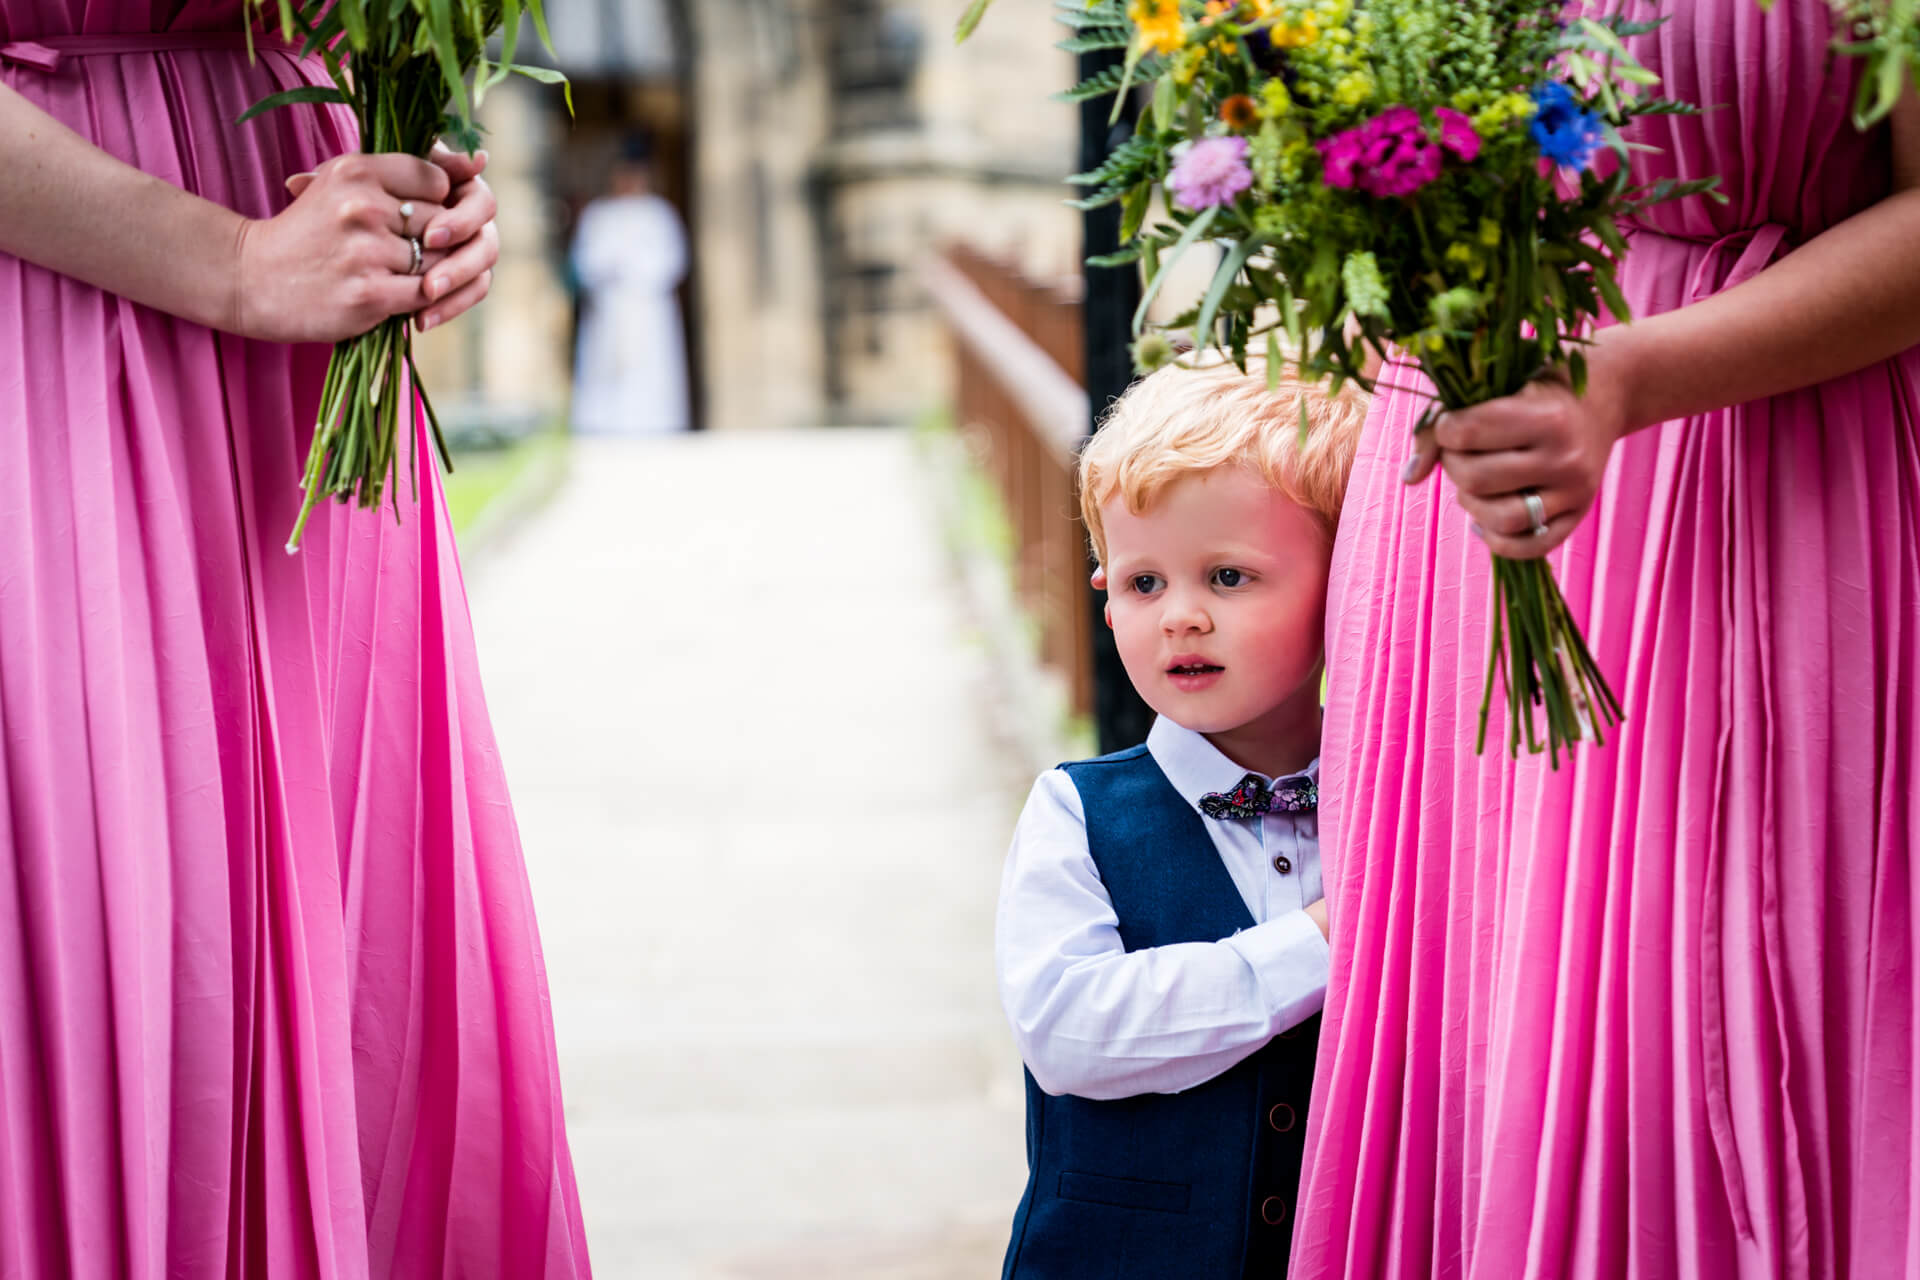 pageboy holding onto the skirt of a bridesmaid